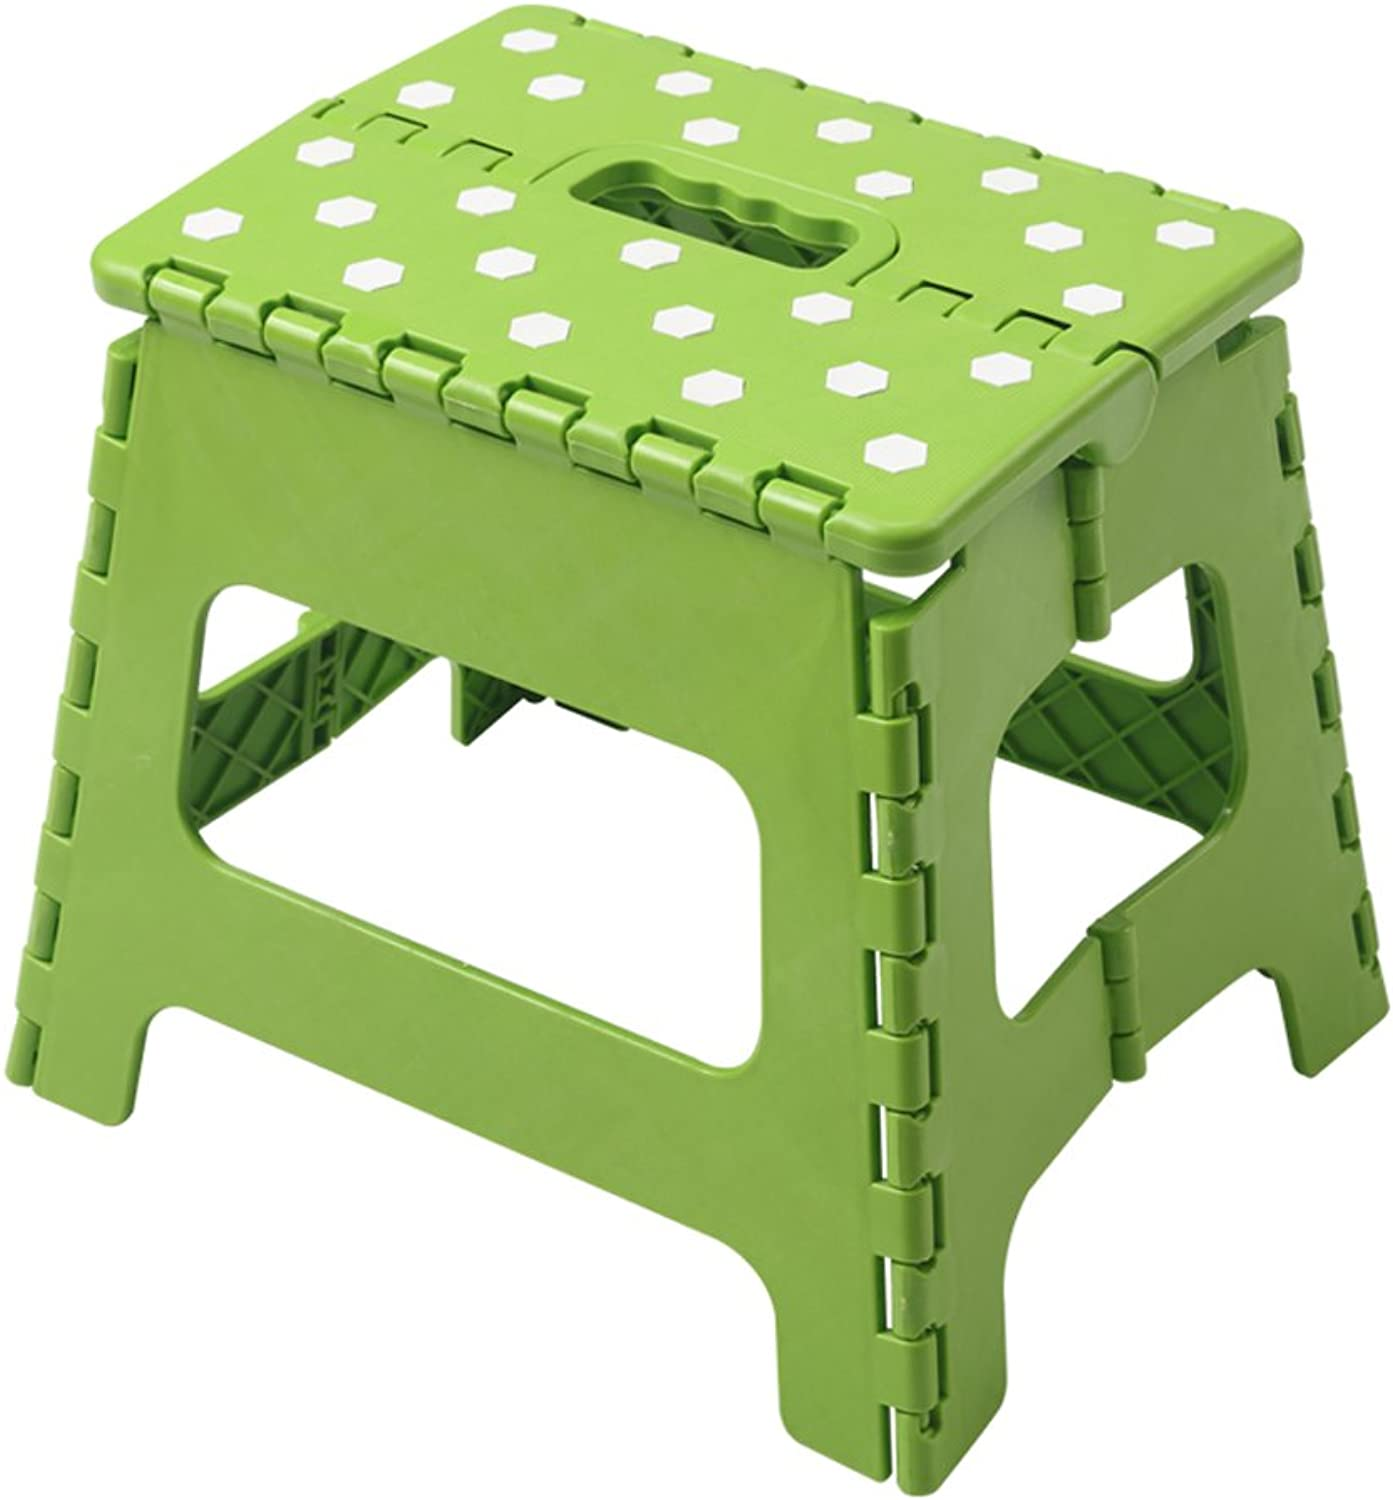 Folding Step Stool  Portable for Kids Or Adult 27cm High 1KG bluee Pink Green Yellow (color   Green)